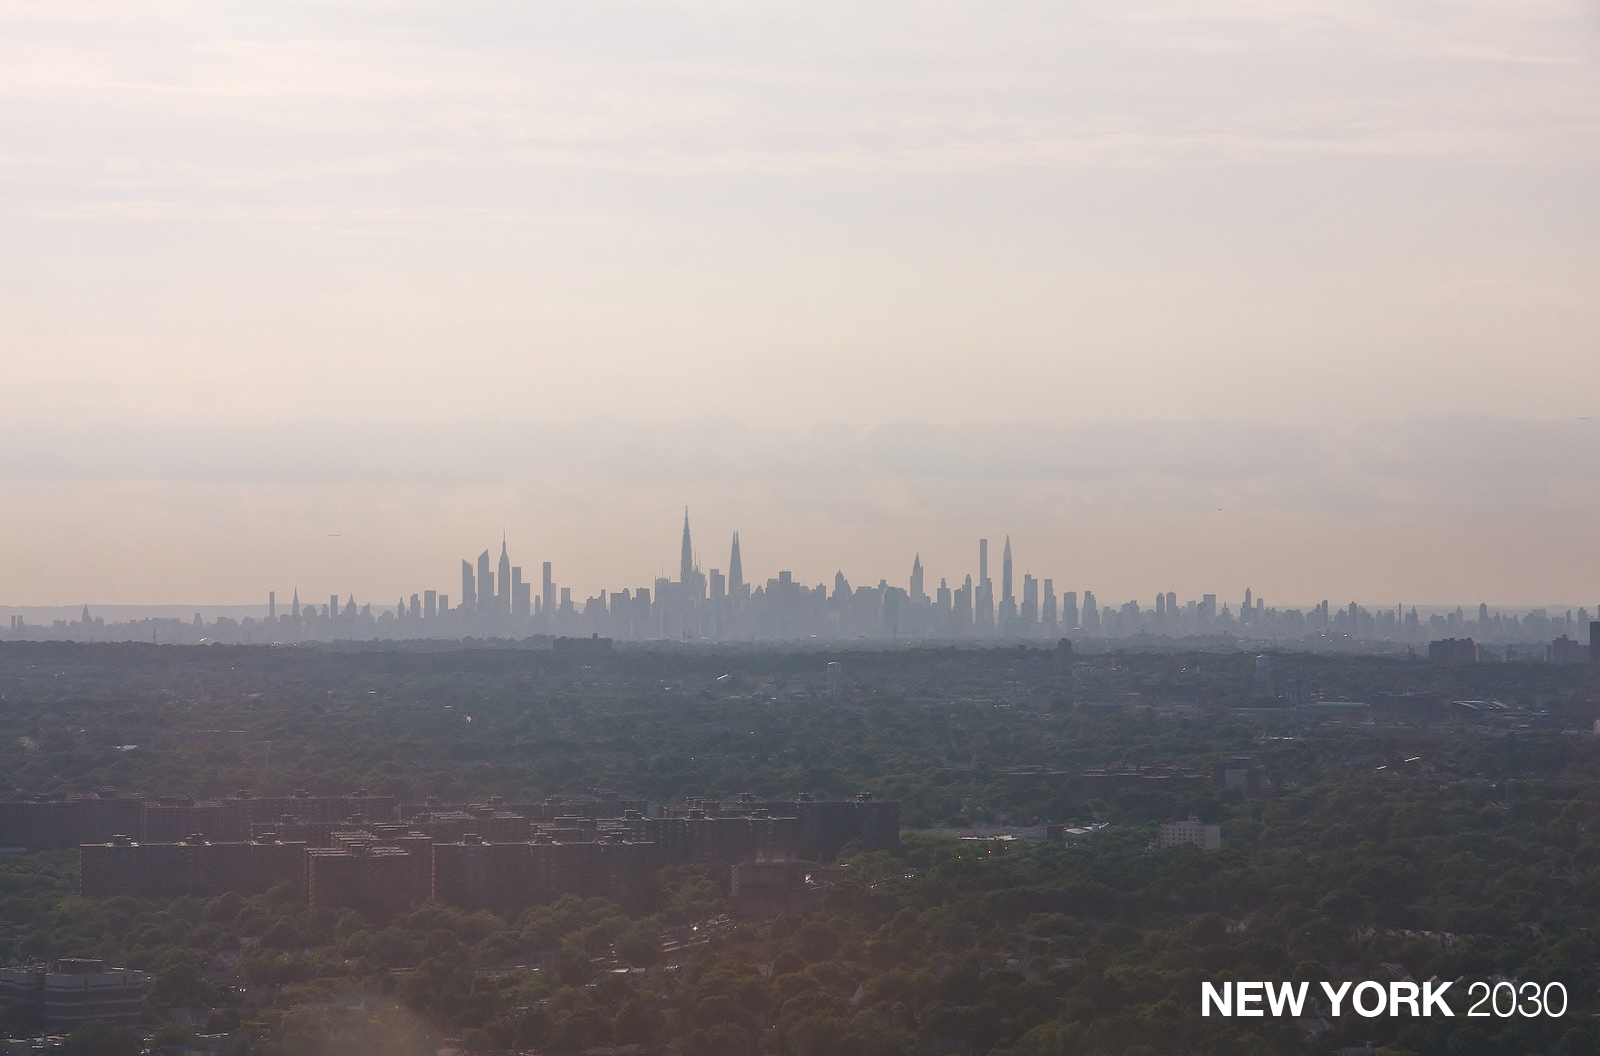 New York City Skyline in 2030